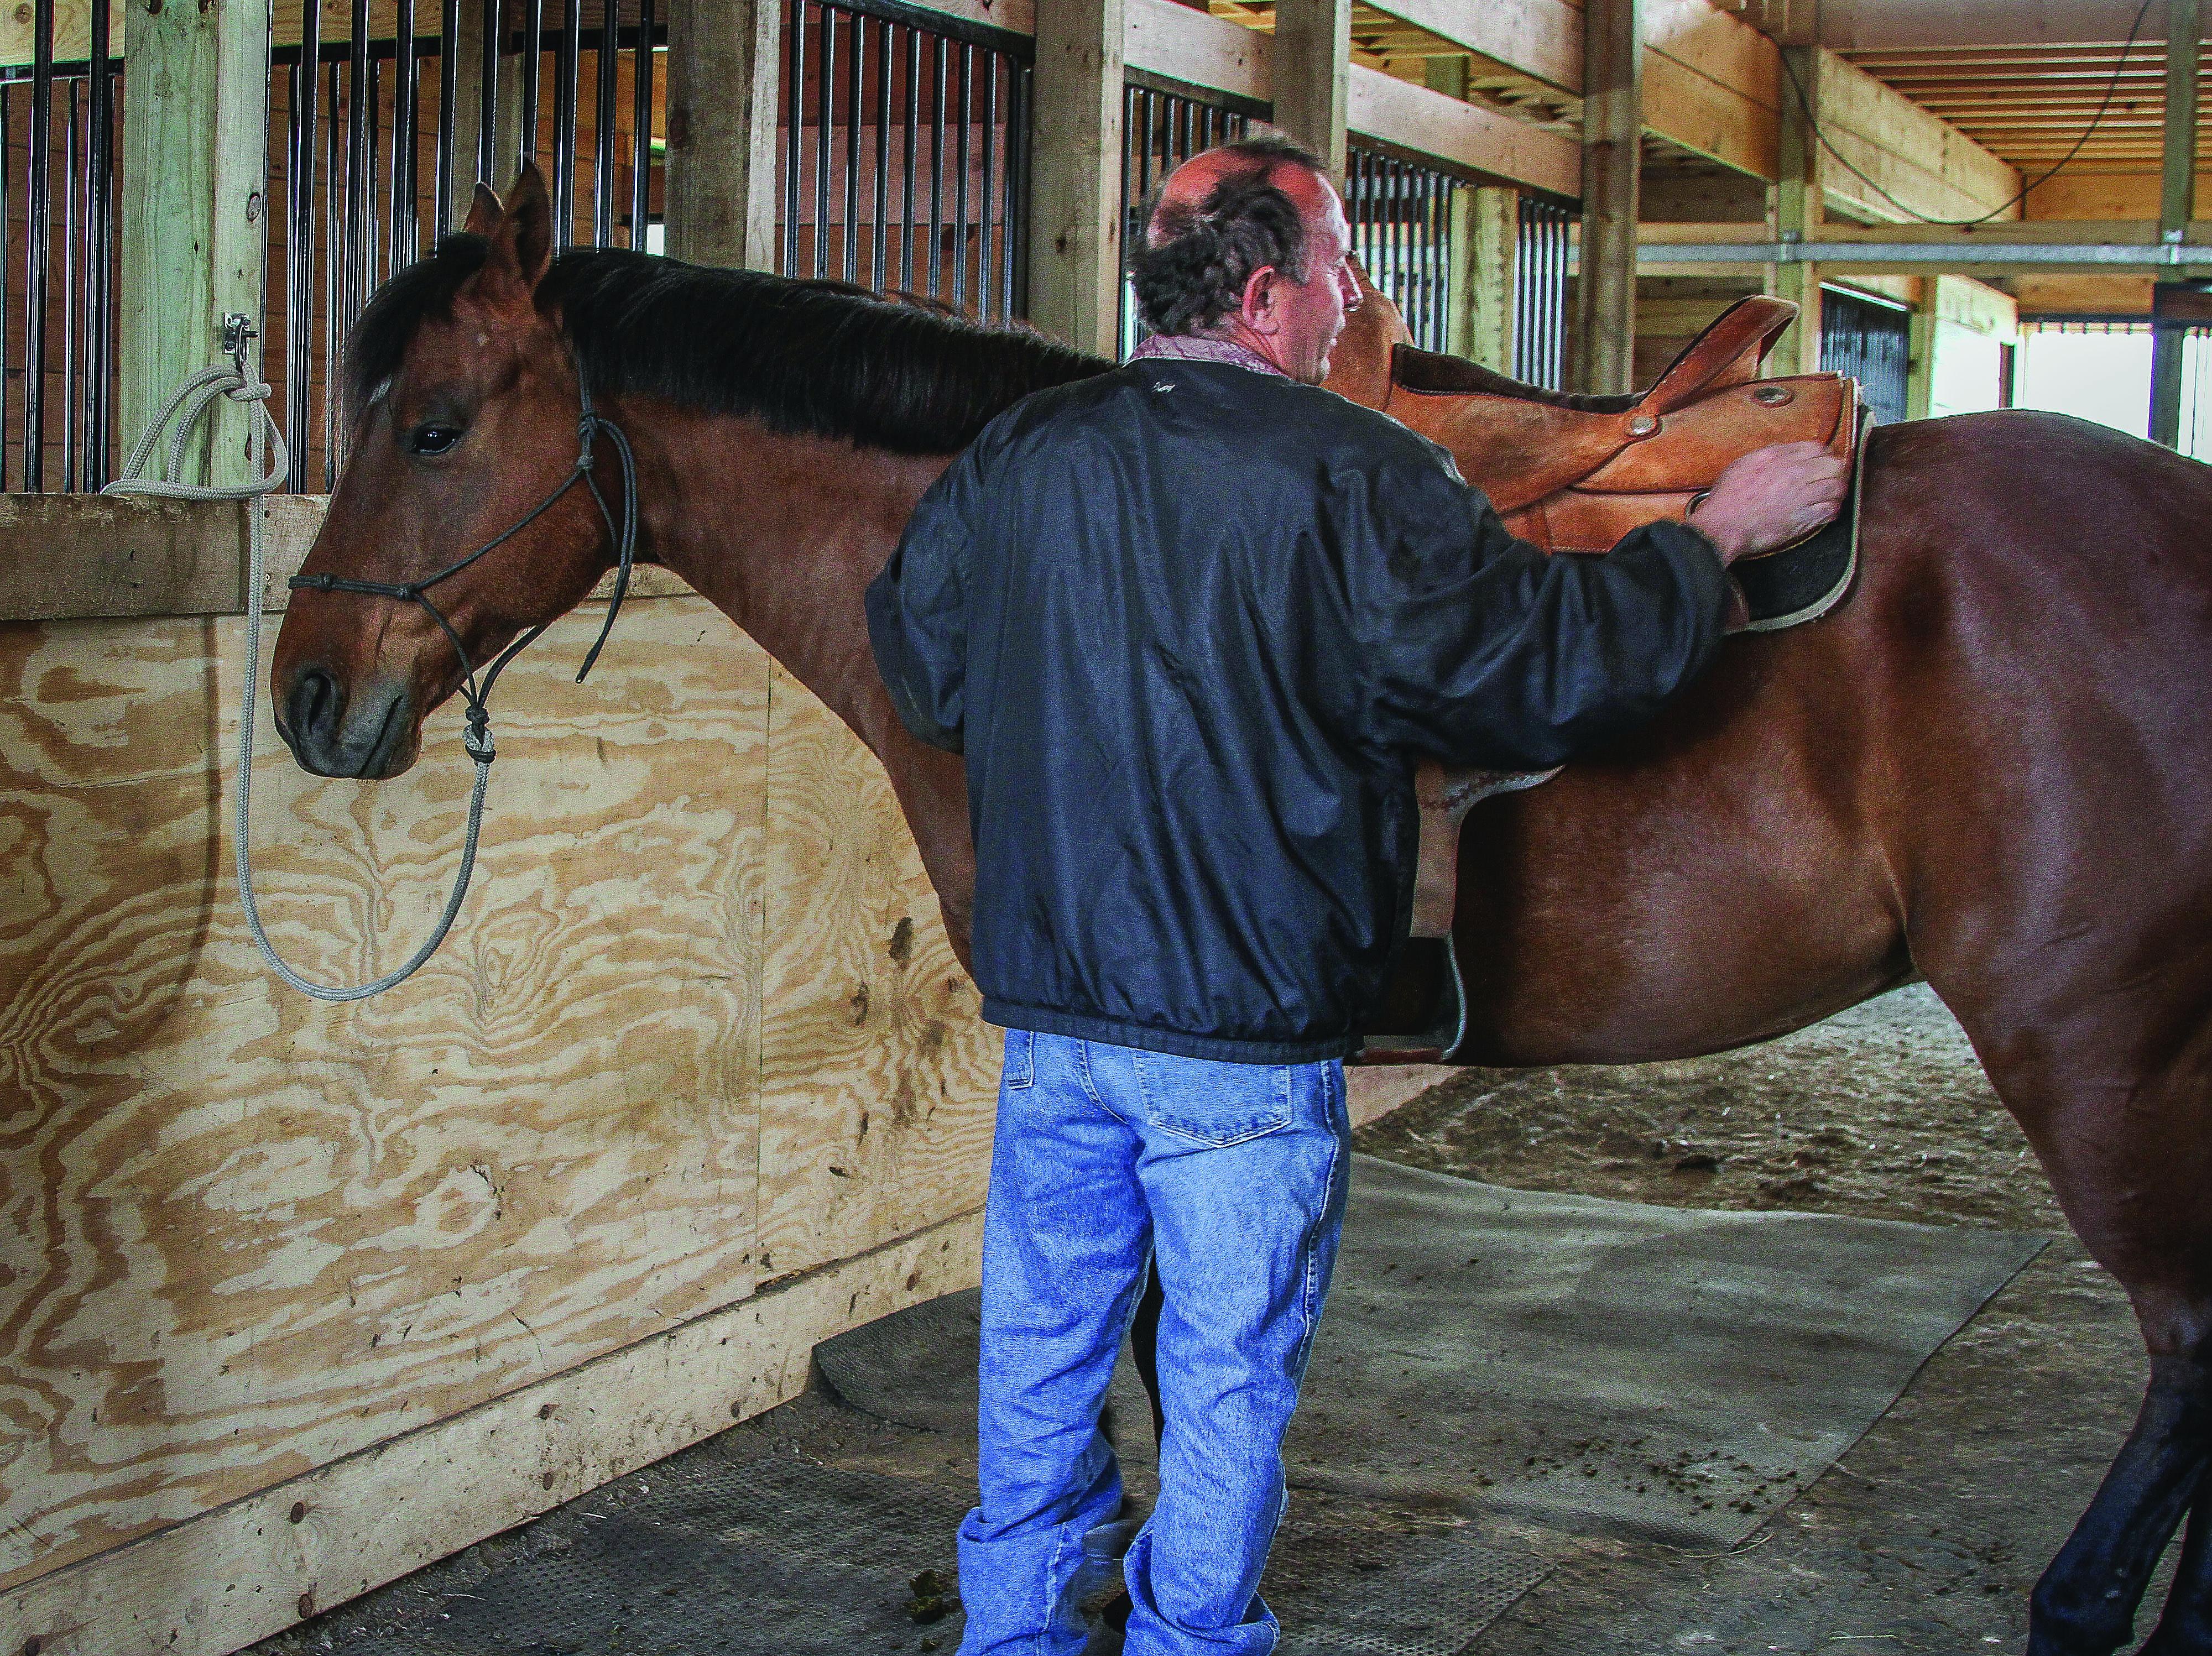 Owner of VVV Training Don van Dyke saddles his horse, Charlie, in the newly finished indoor arena. Photograph by Avery Rowlison.